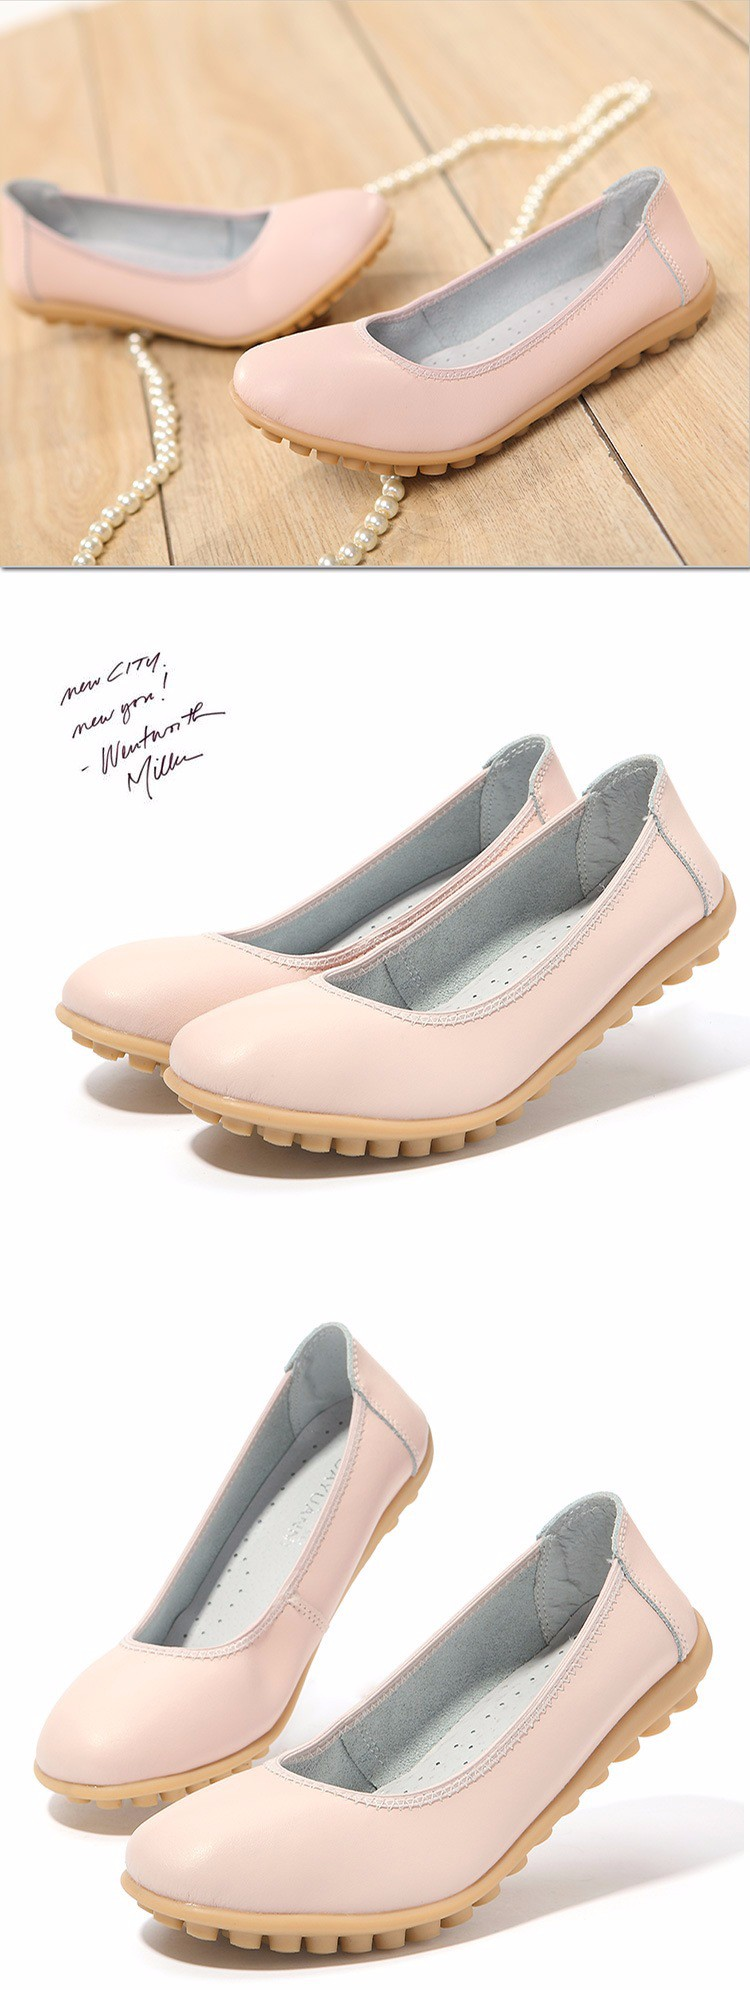 New 2016 Women Leather Shoes Slip-on Ballet Women Flat Comfort Shoes Woman Chaussure Homme Women Loafers BT94 (1)